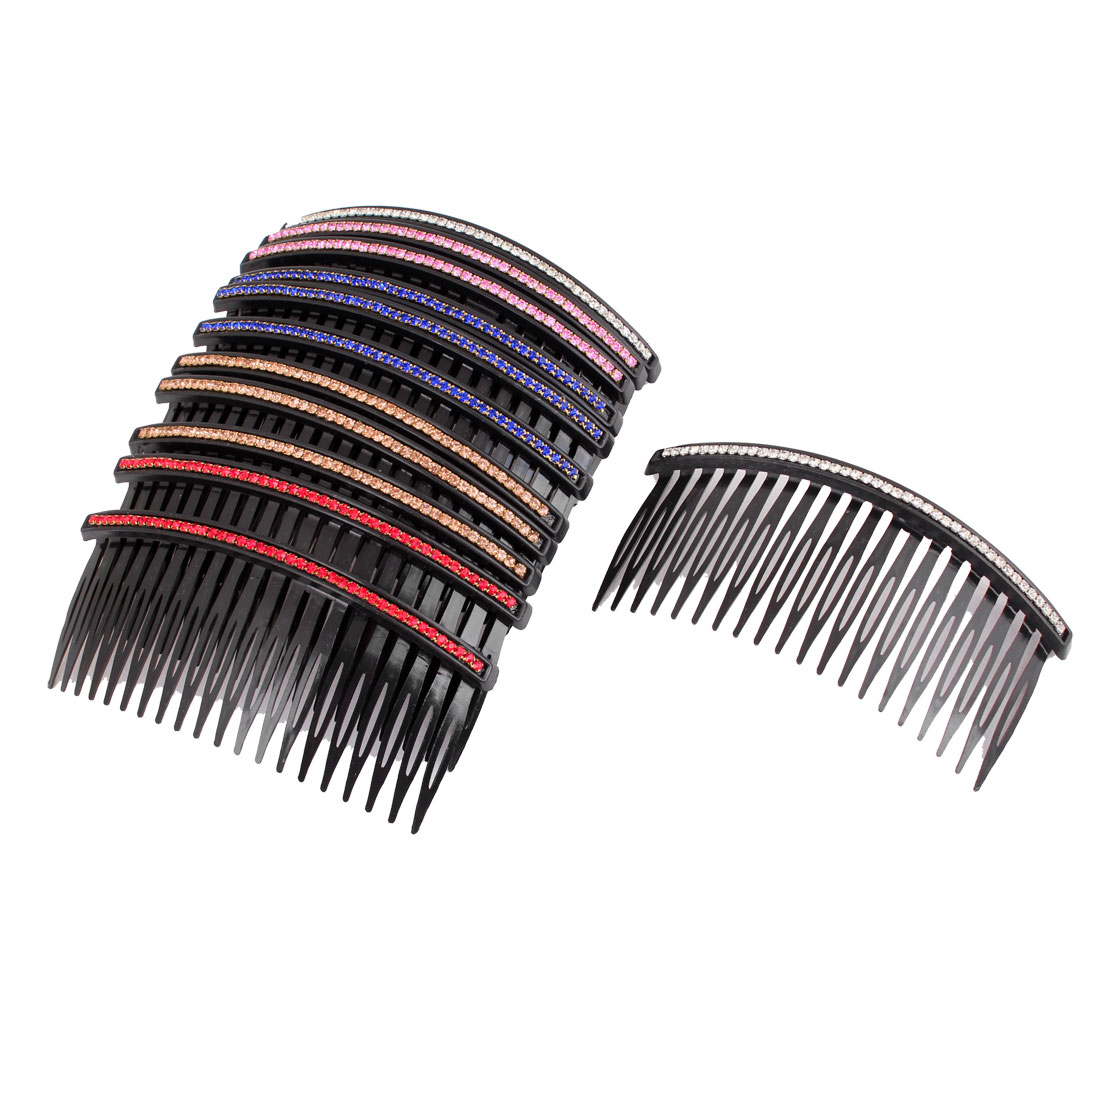 12 Pieces Colorful Rhinestone 20 Teeth Hair Clip Comb Ornament for Ladies